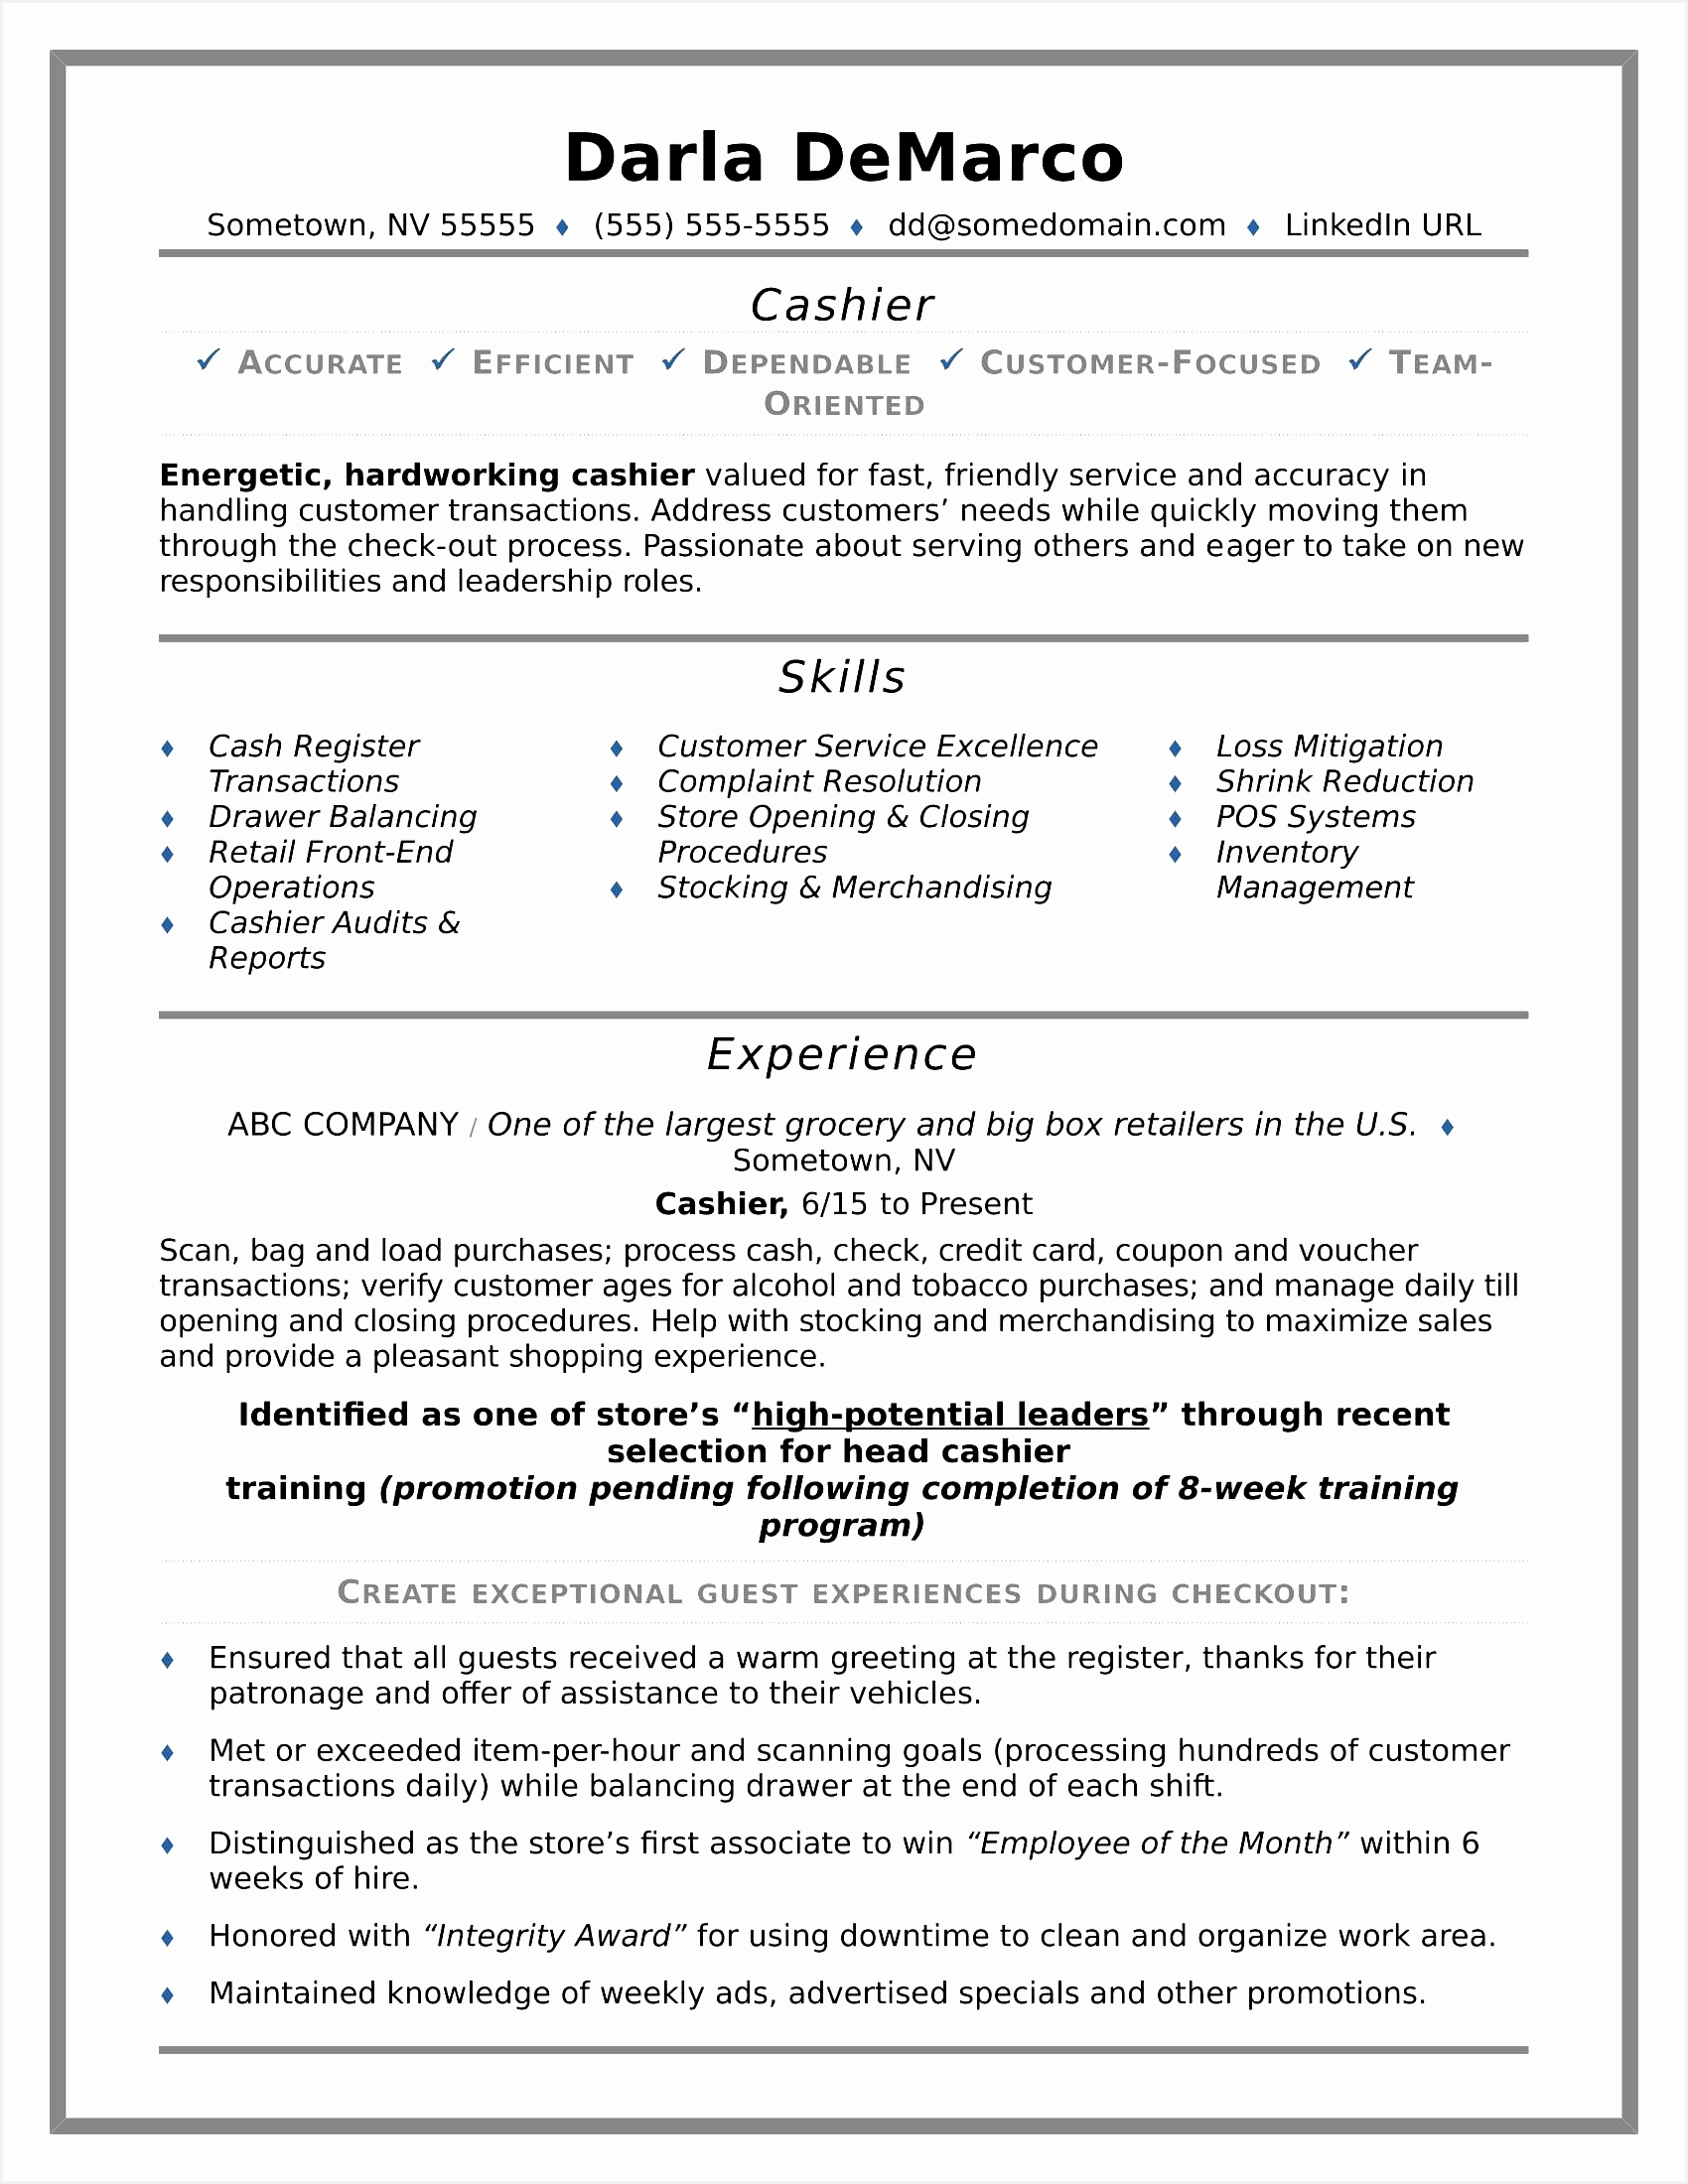 Word Beautiful Executive Resume Examples Good Resume Information22001700